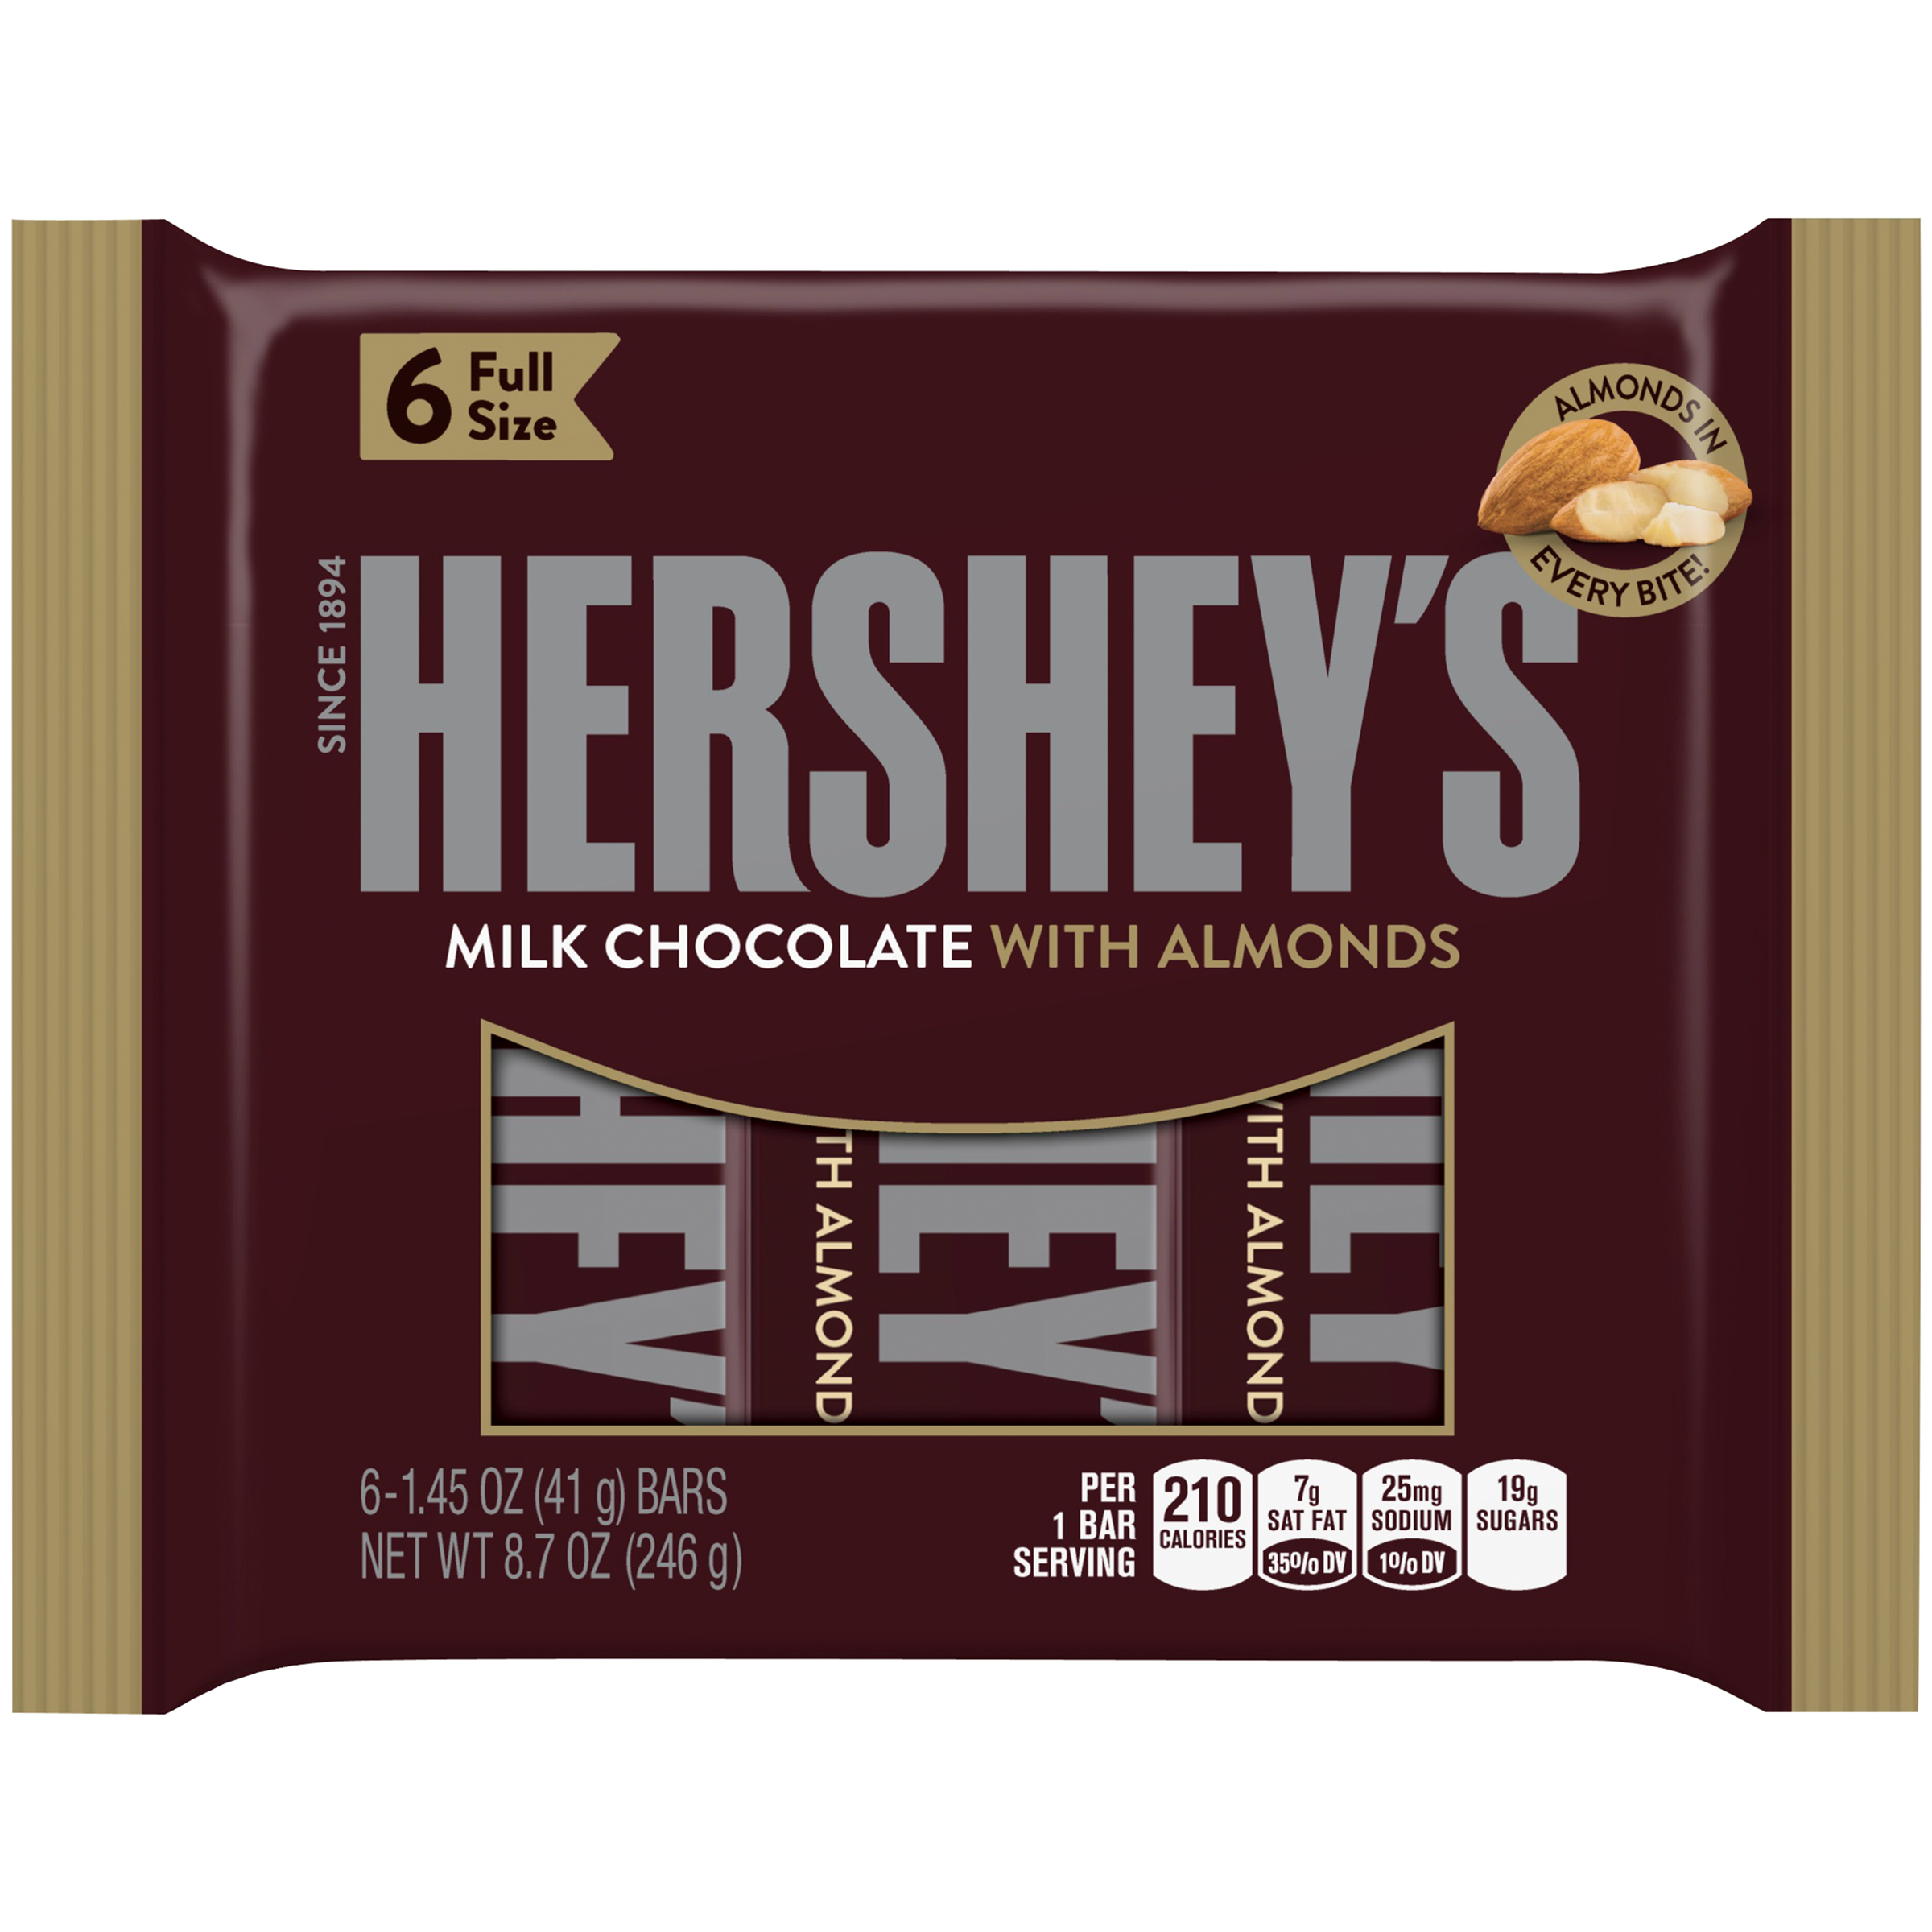 HERSHEY'S Milk Chocolate with Almonds Bars, 6 count, 8.7 oz